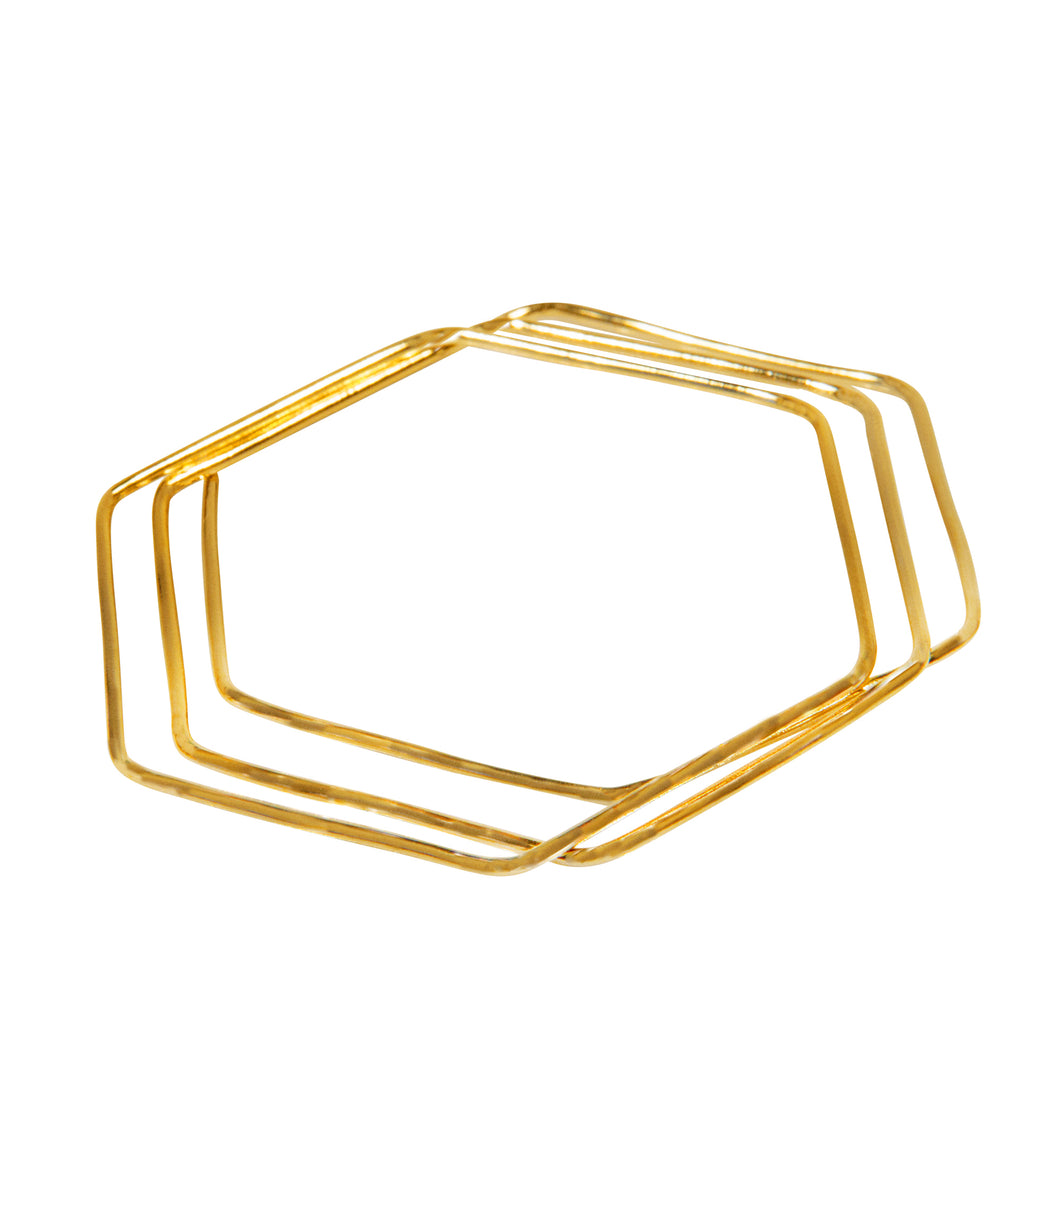 14k gold geo bangles hexagon shaped set of 3